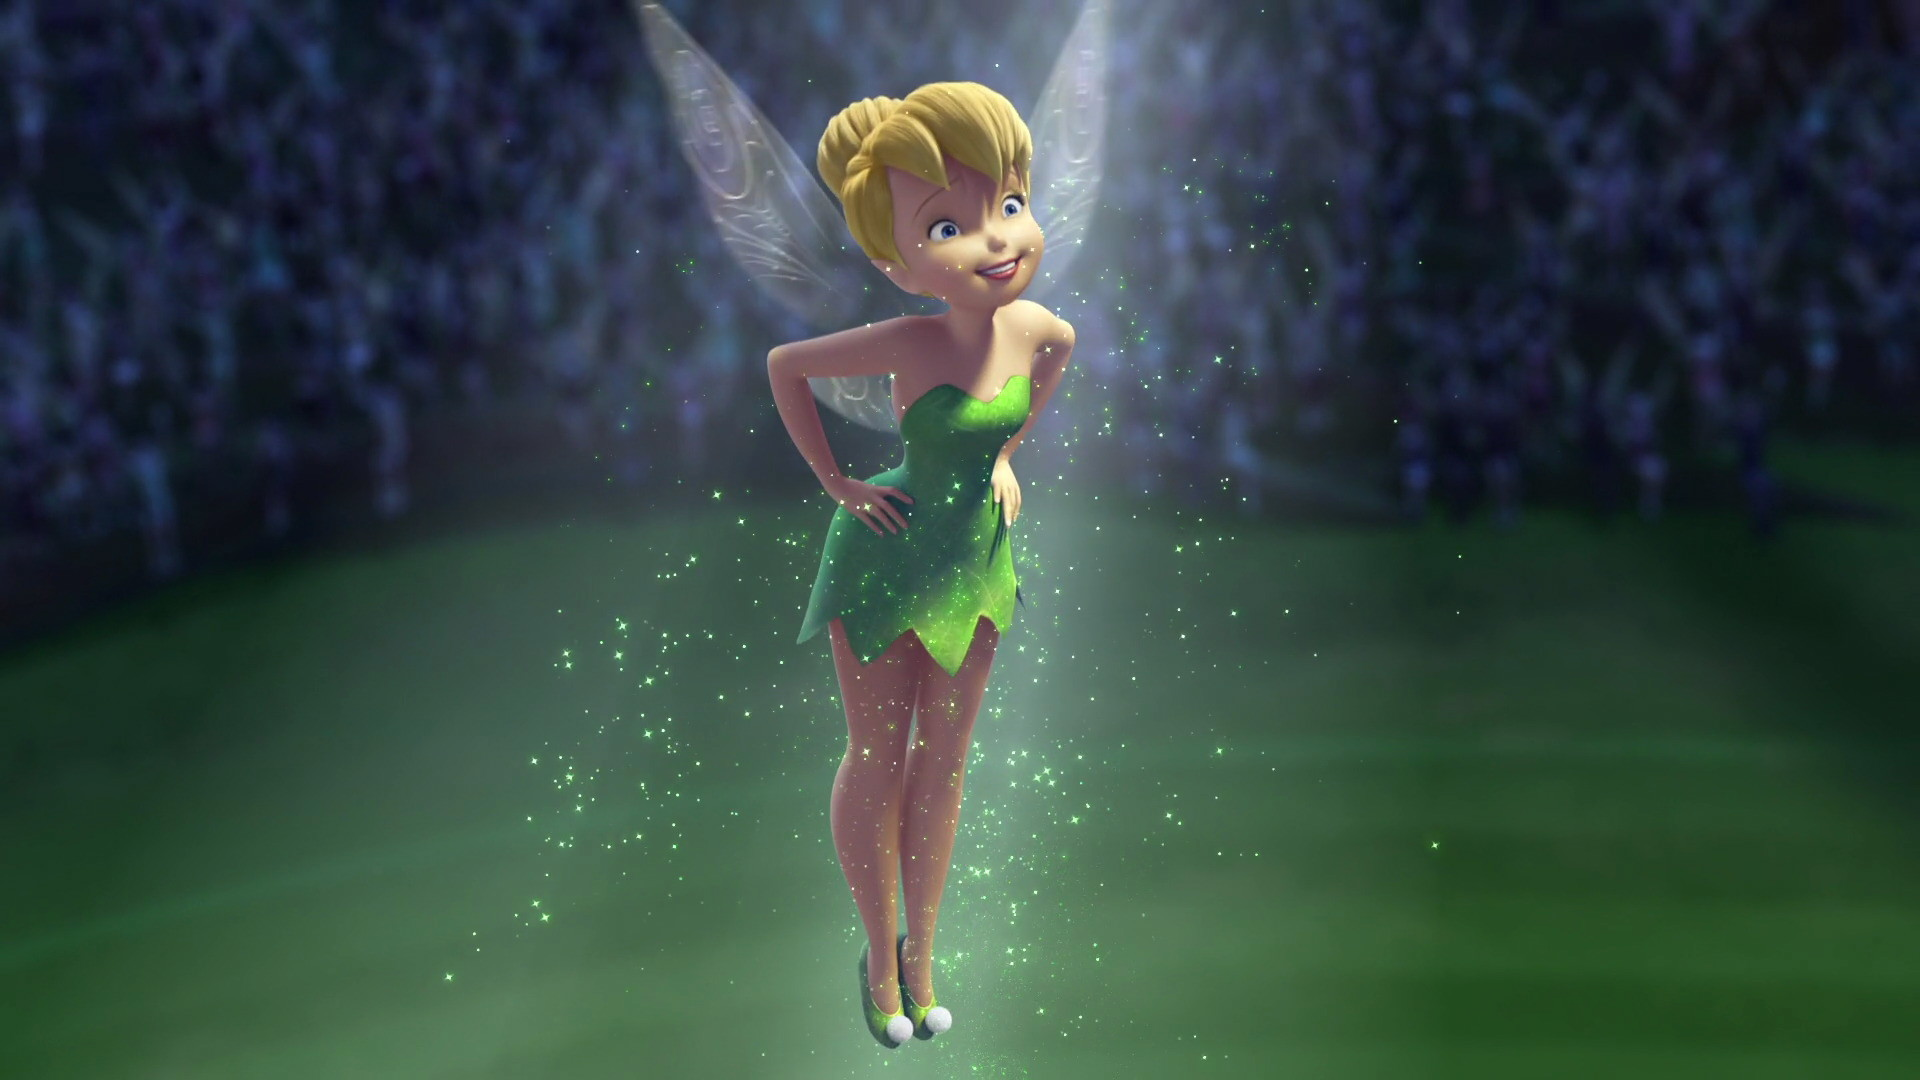 Res: 1920x1080, Movie - The Pirate Fairy Fairy Tinker Bell Wallpaper